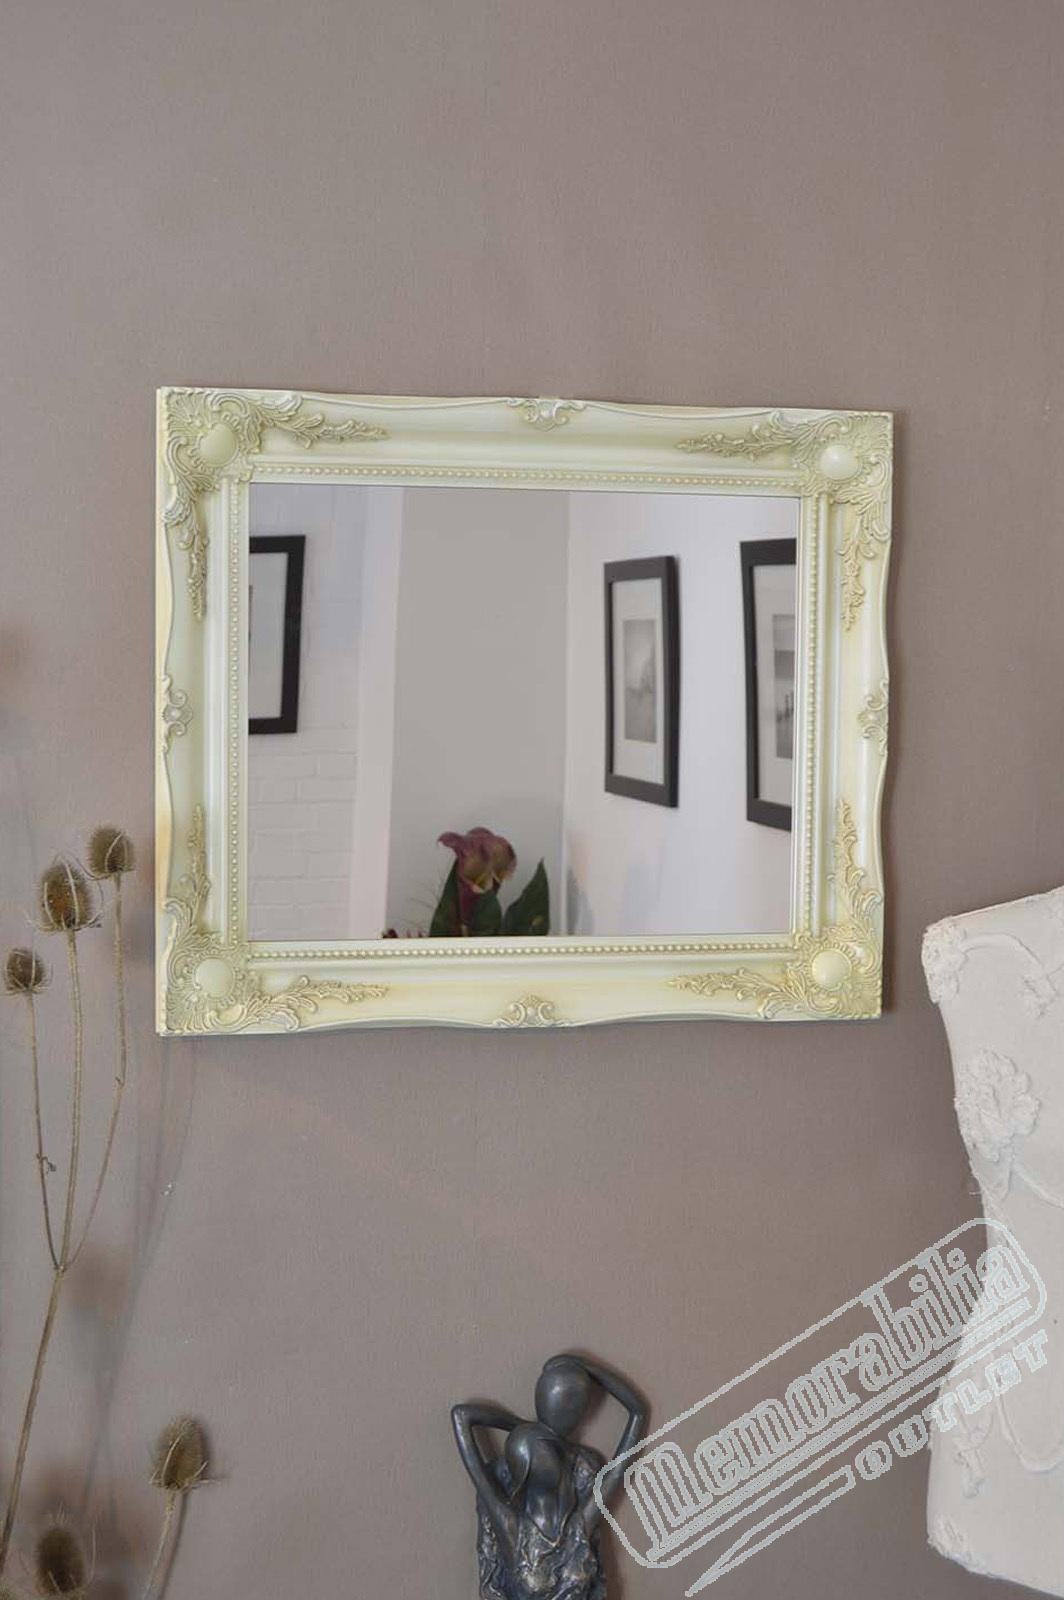 Large Wall Mirror 26 X 22034 66cm X 56cm Ivory Ornate Antique With Regard To Ivory Ornate Mirror (Image 10 of 15)